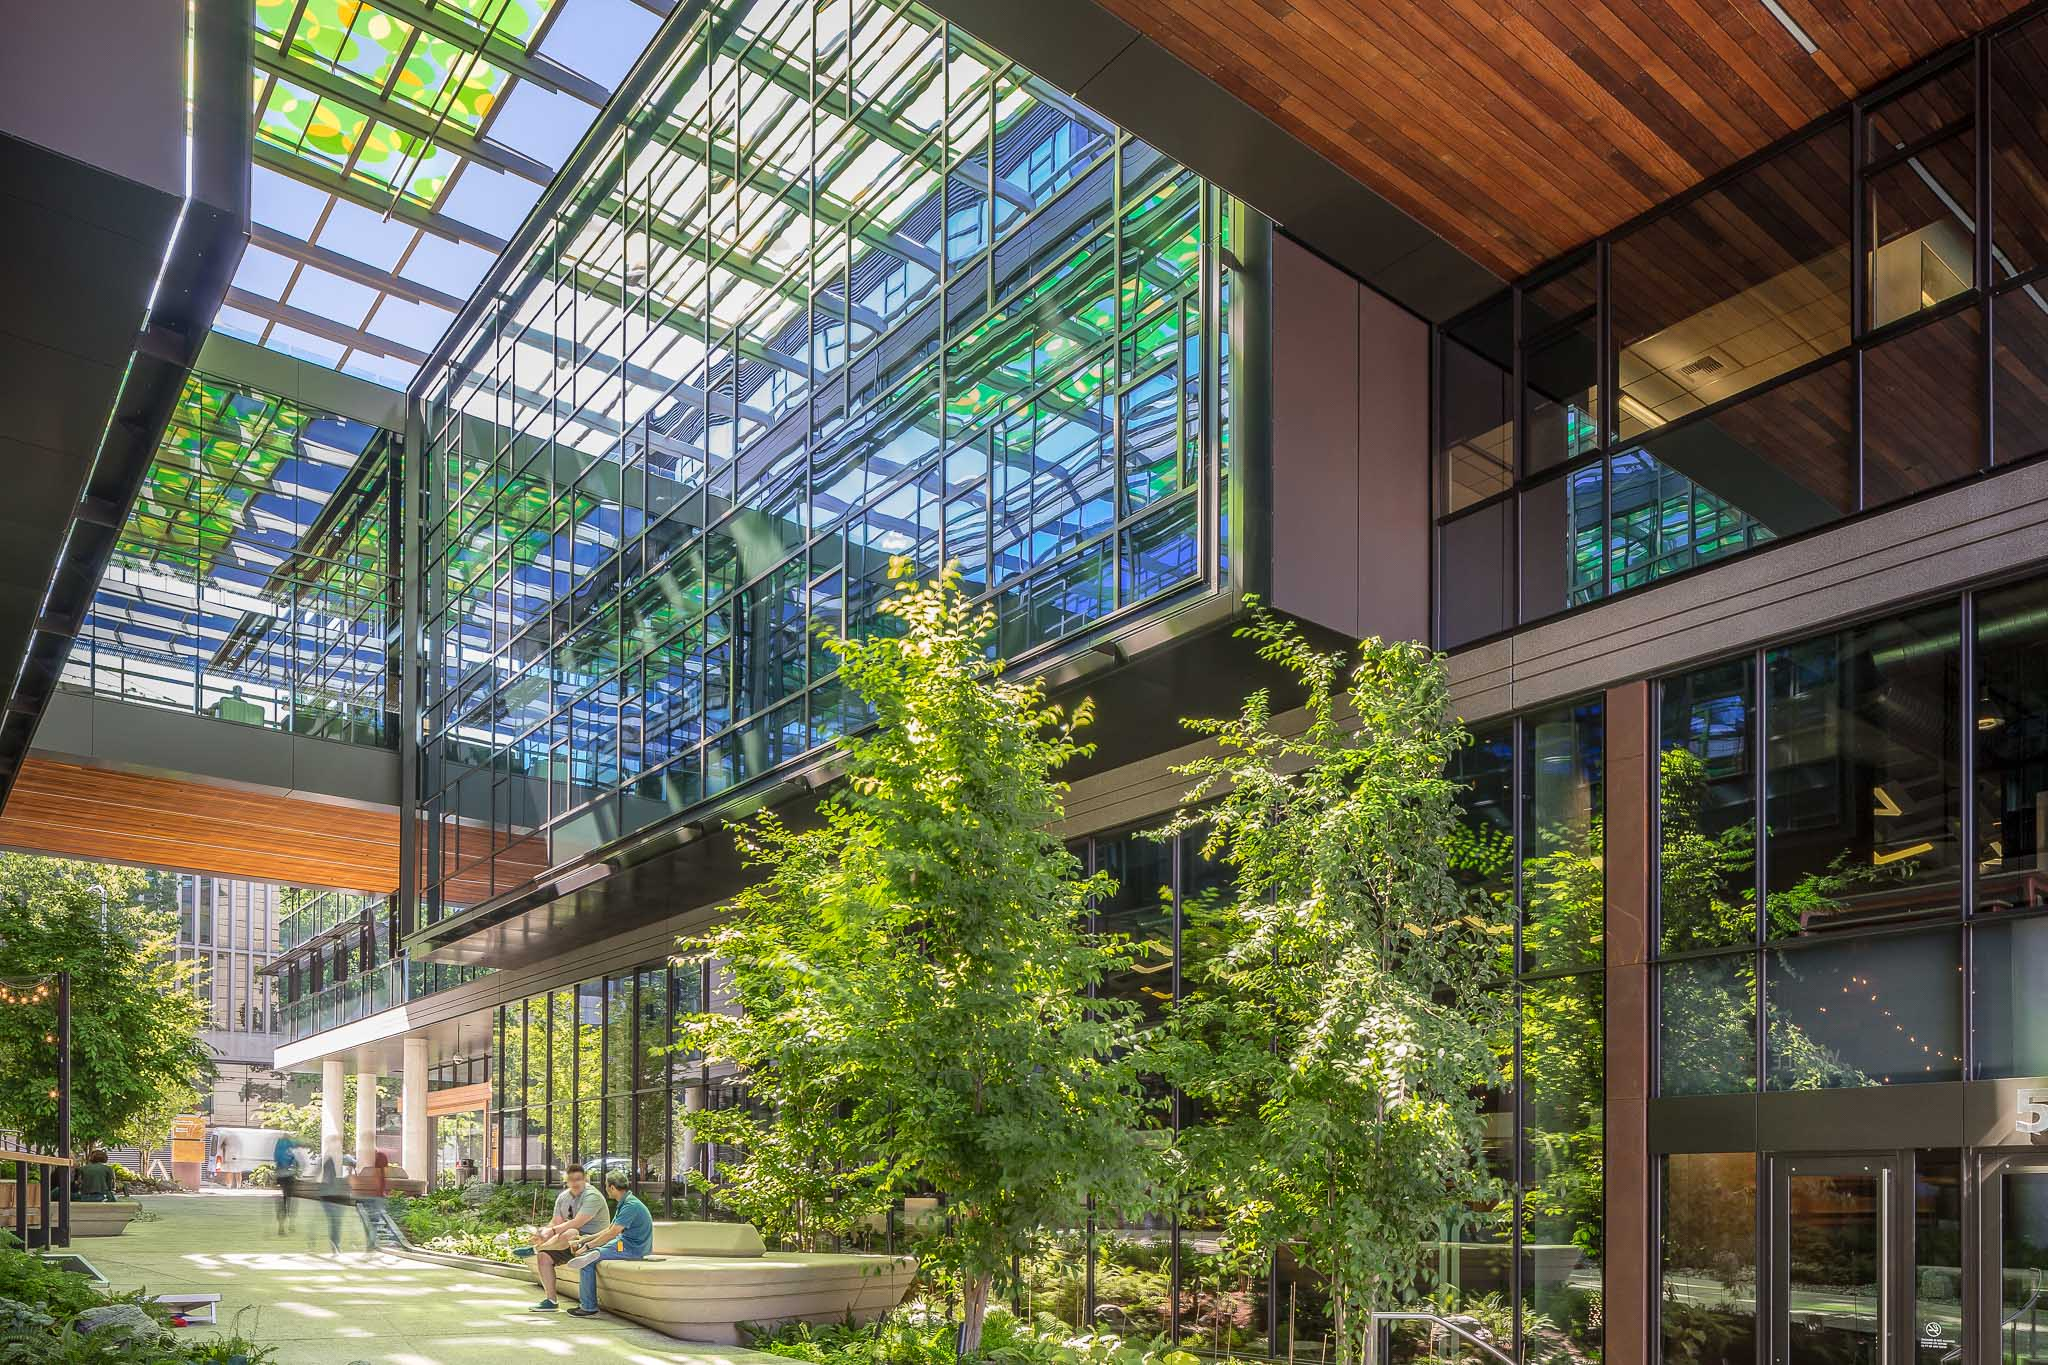 Glass atrium in Amazon.com office building